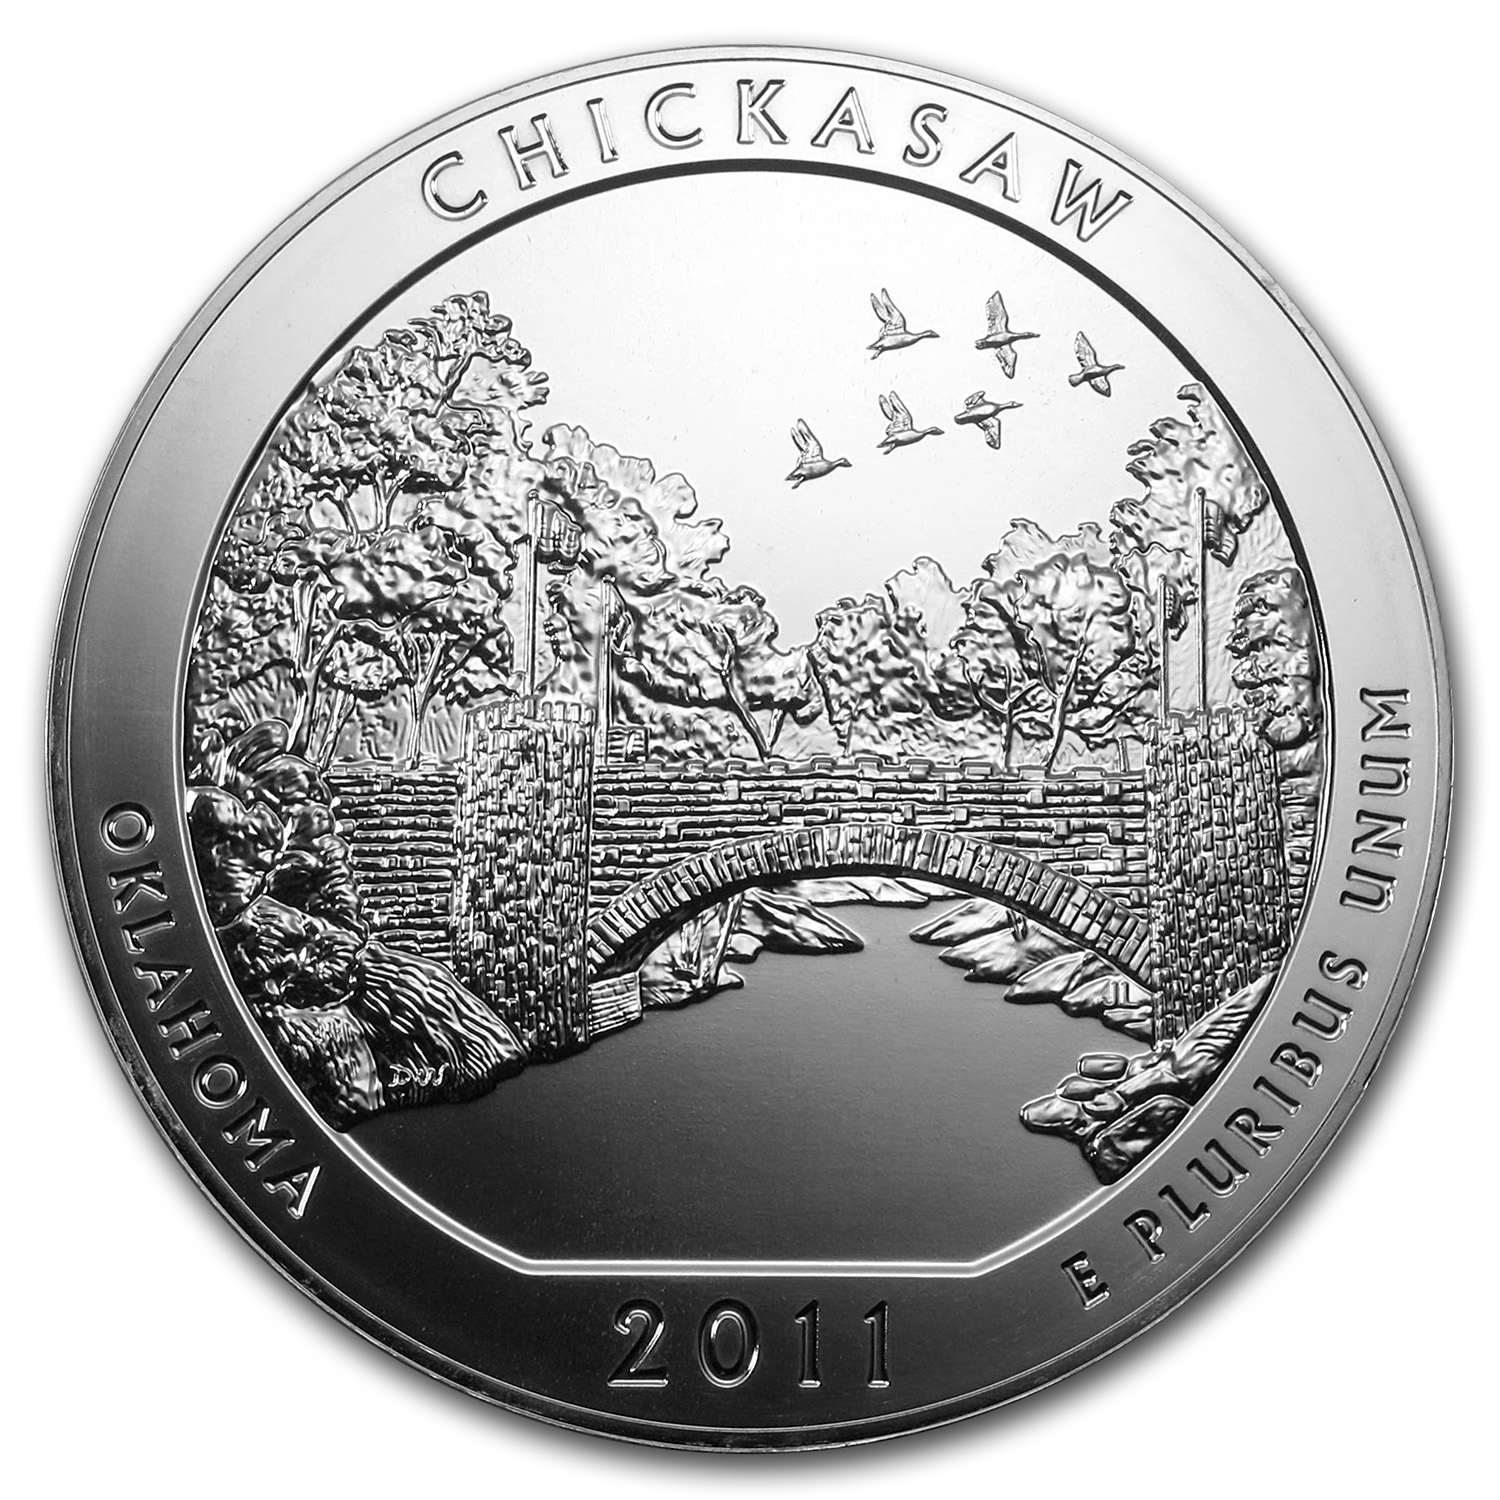 Silver Proof 2011 Chickasaw OK S America the Beautiful Quarter